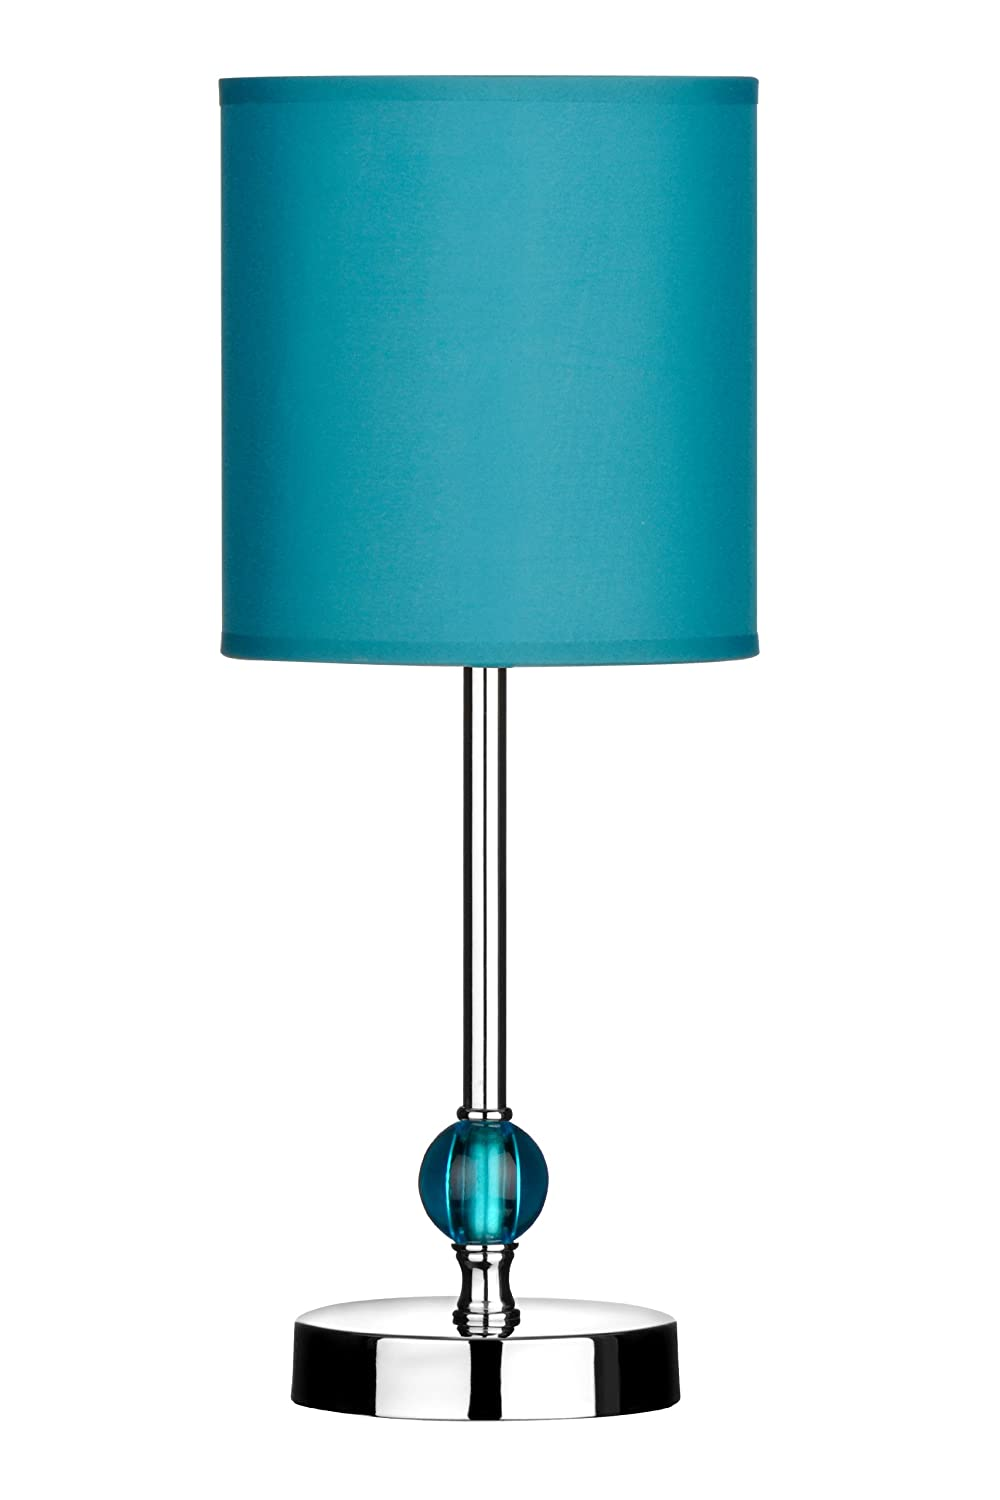 Premier Housewares Chrome Stem Table Lamp With Acrylic Ball And Fabric  Shade   Teal: Amazon.co.uk: Lighting